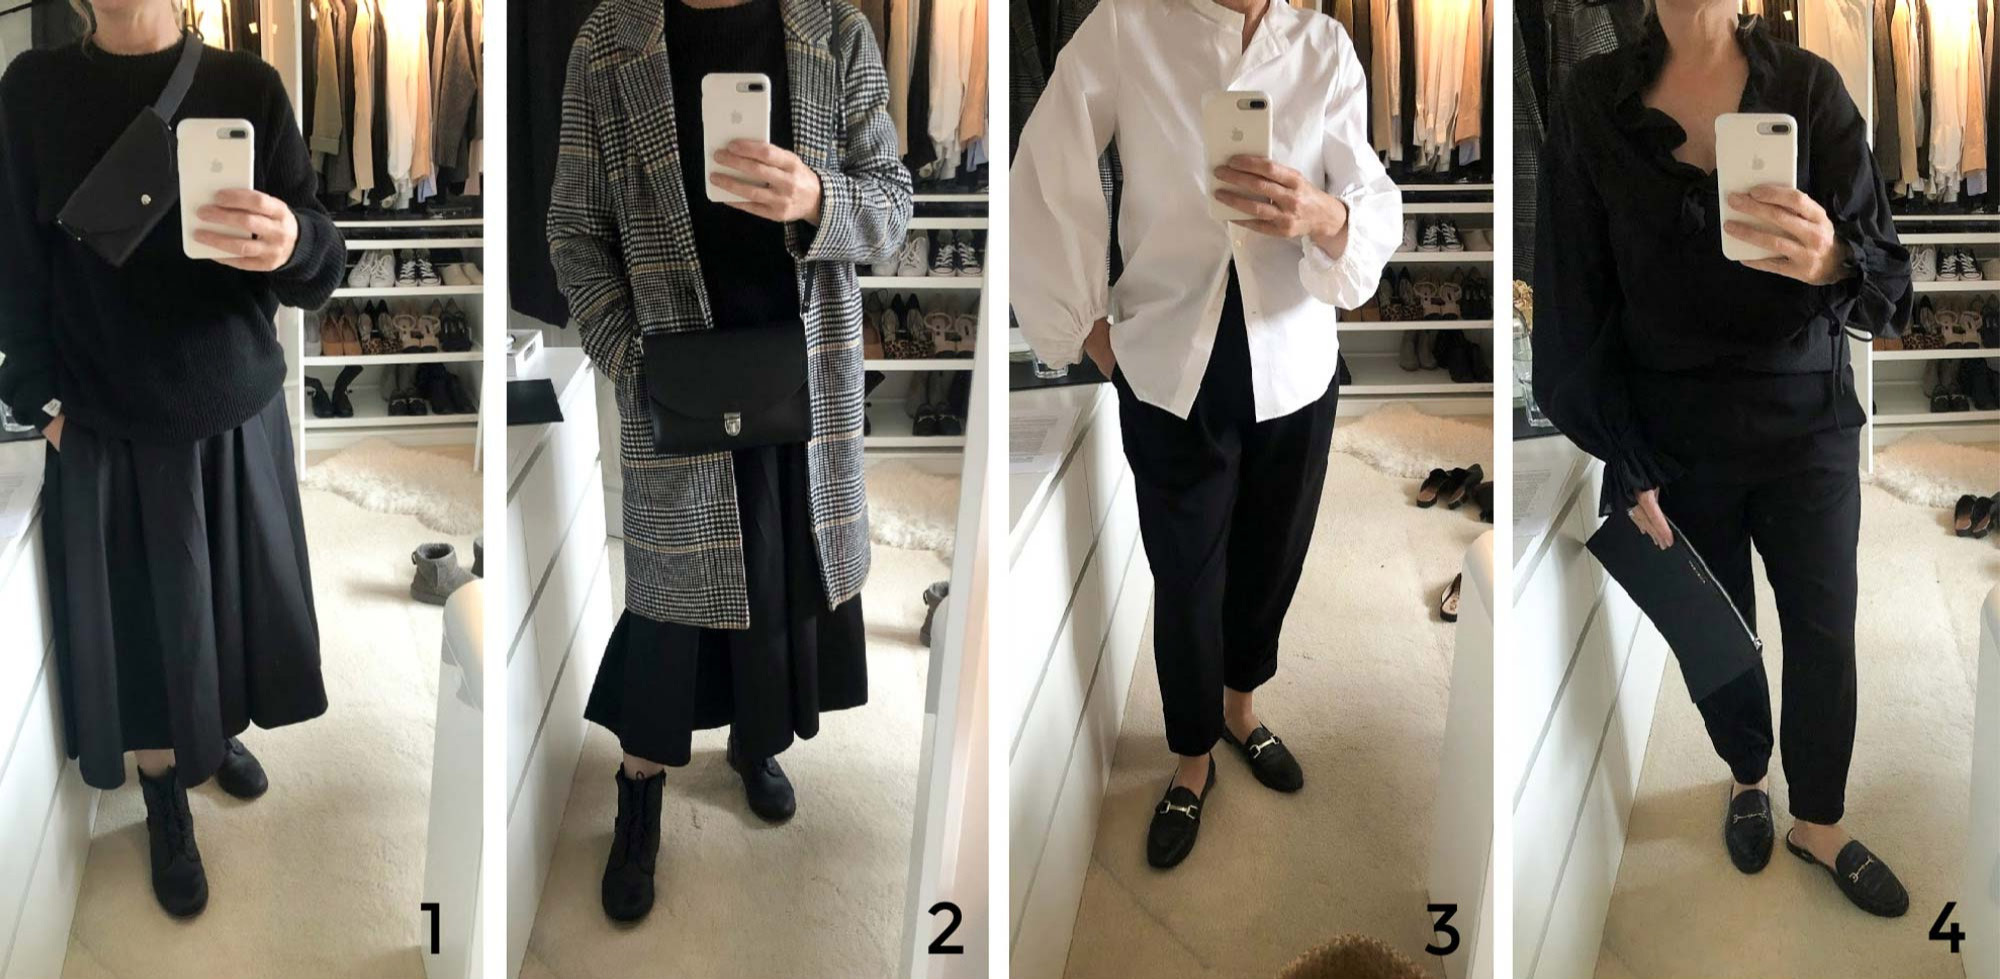 outfits-one-to-four.jpg